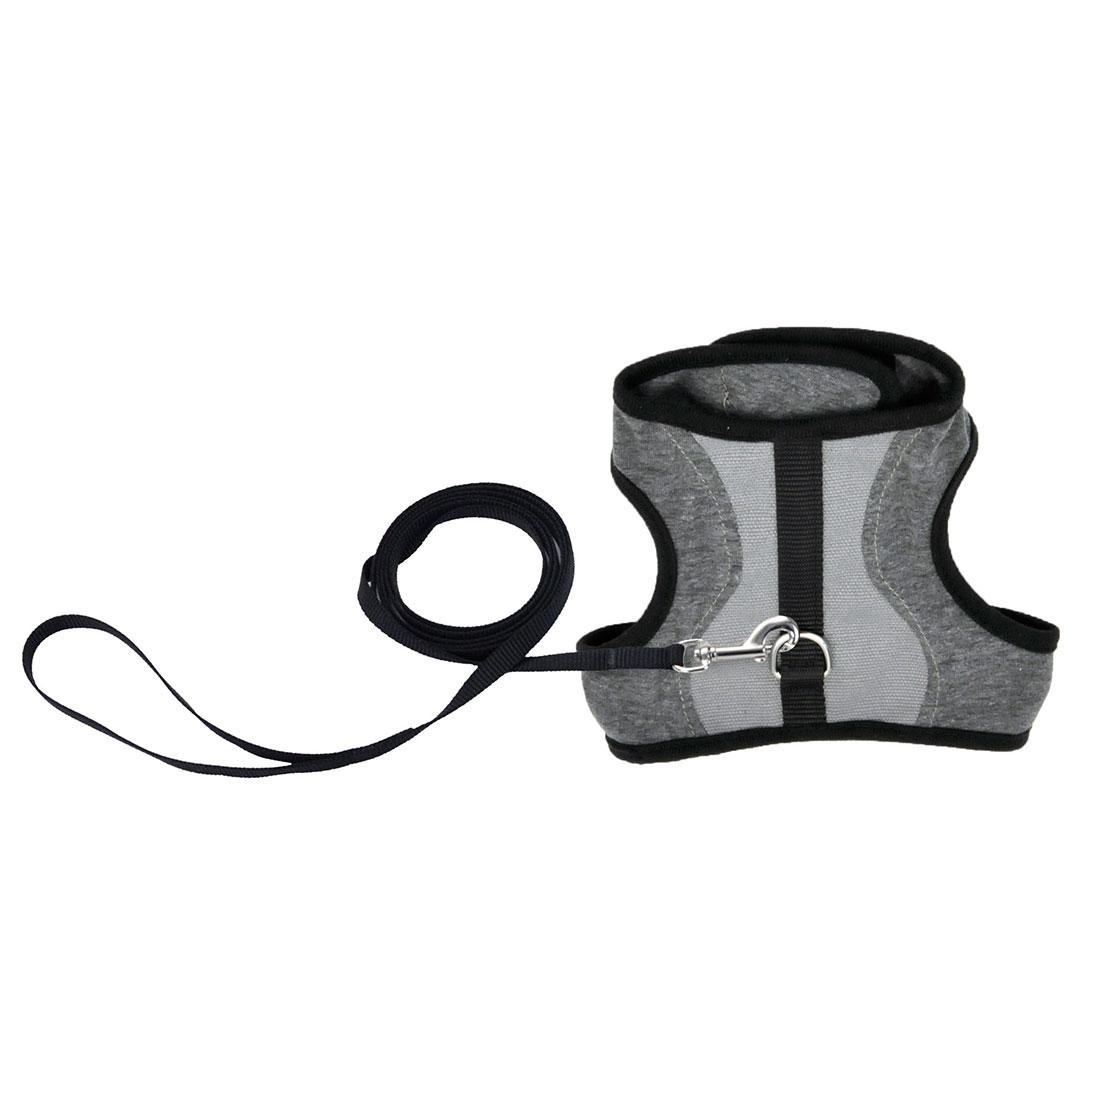 Coastal Adjustable Wrap Harness with Leash for Cats, Gray, 9-14-in